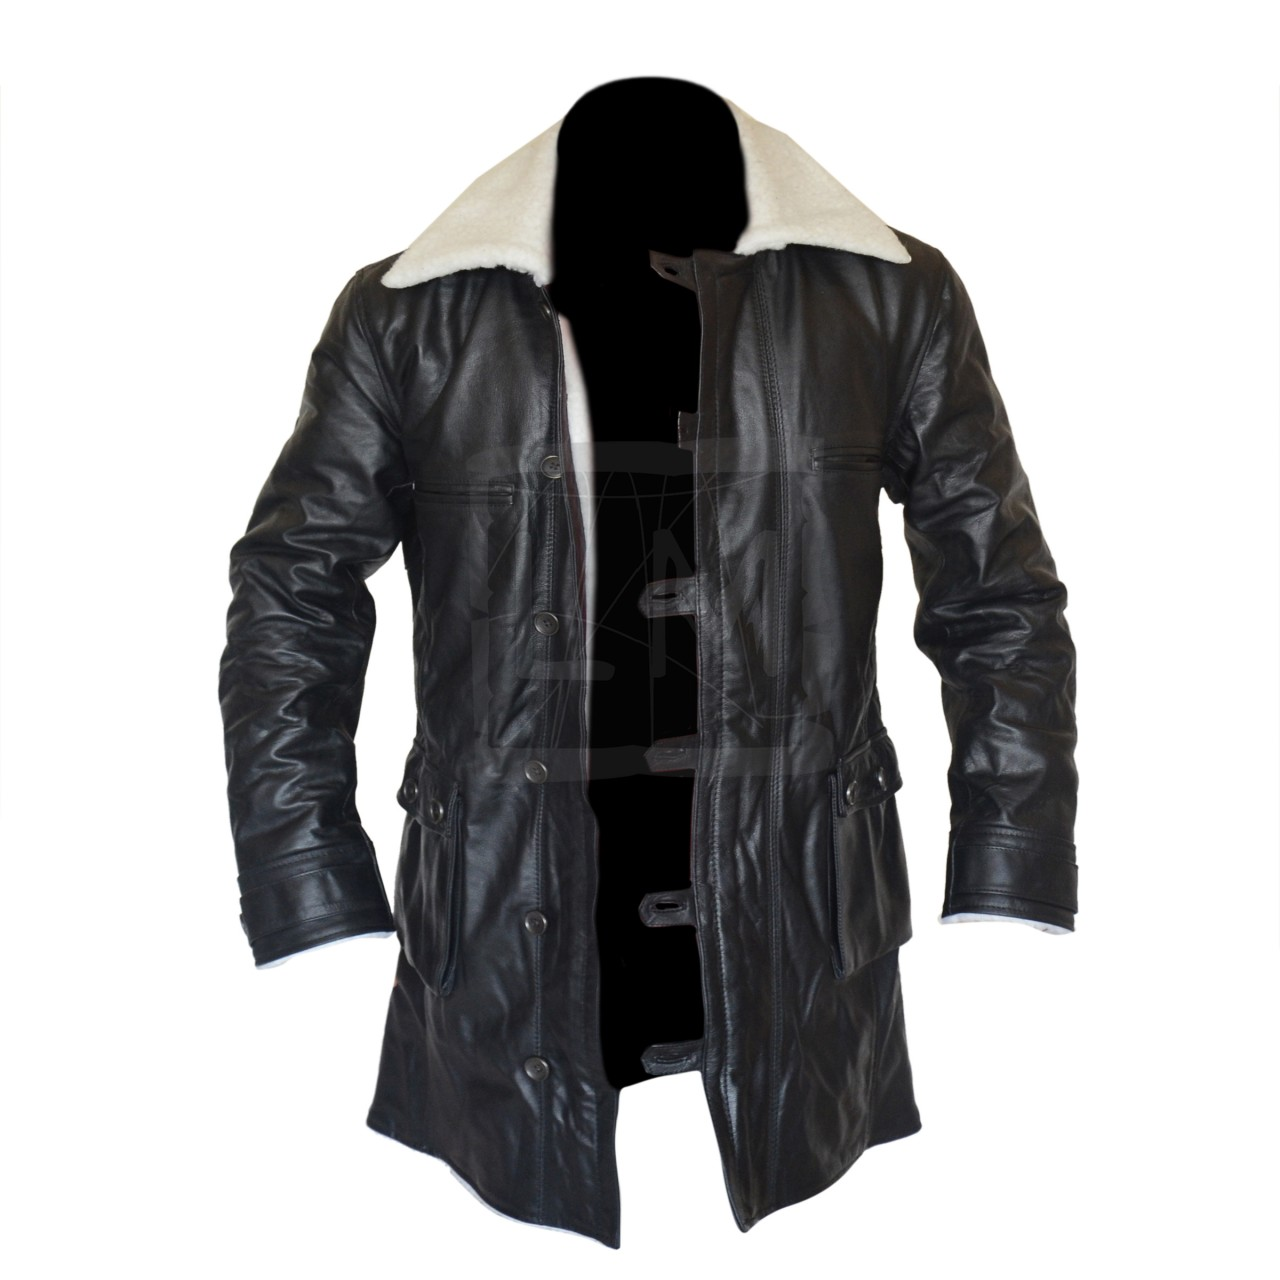 Bane Coat Black Cowhide Leather Jacket Batman Dark Knight Rises ...